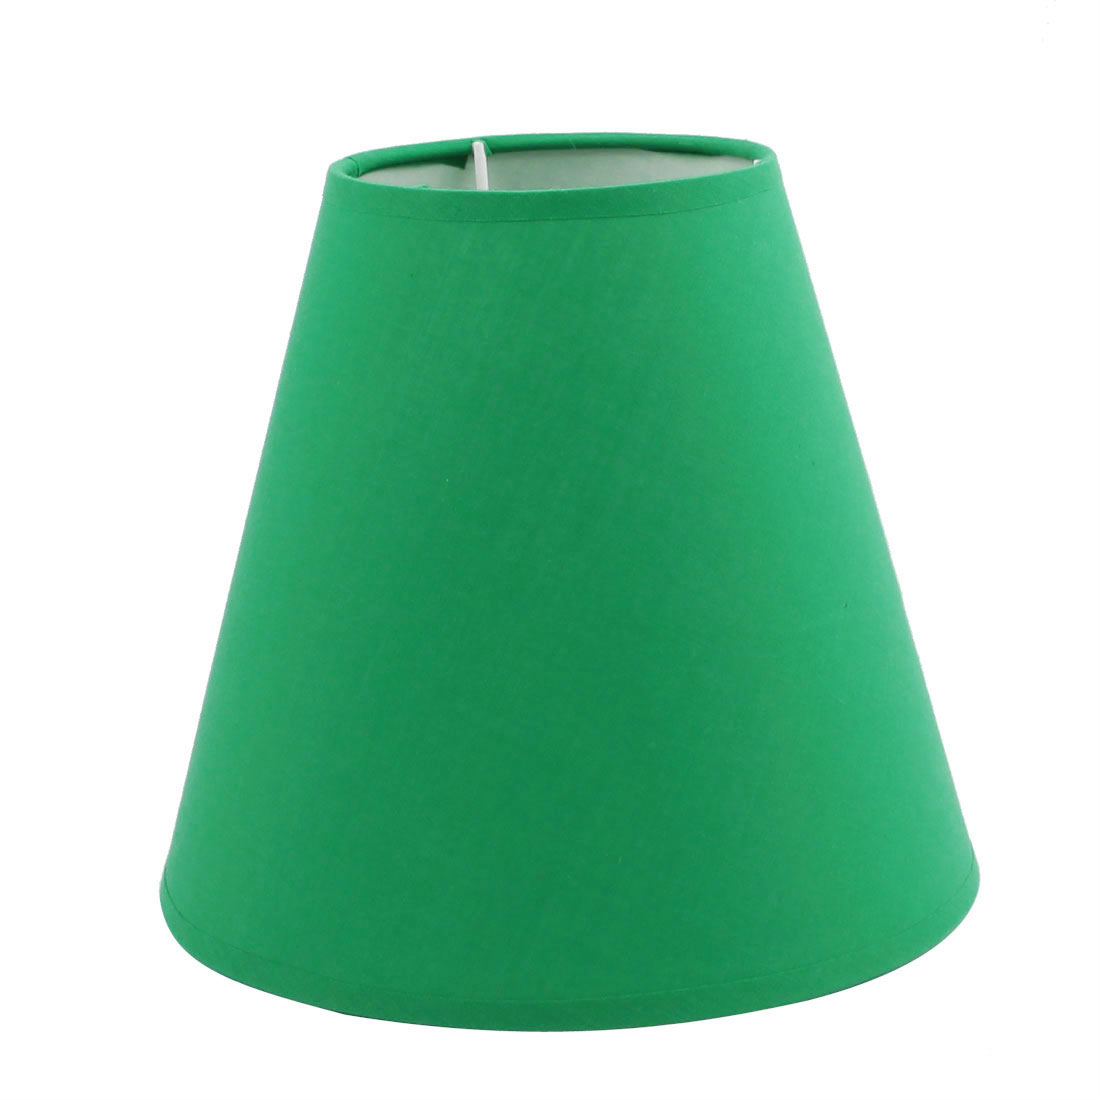 110mmx200mmx170mm Green Lamp Cover for Home Office Student Reading Lamp